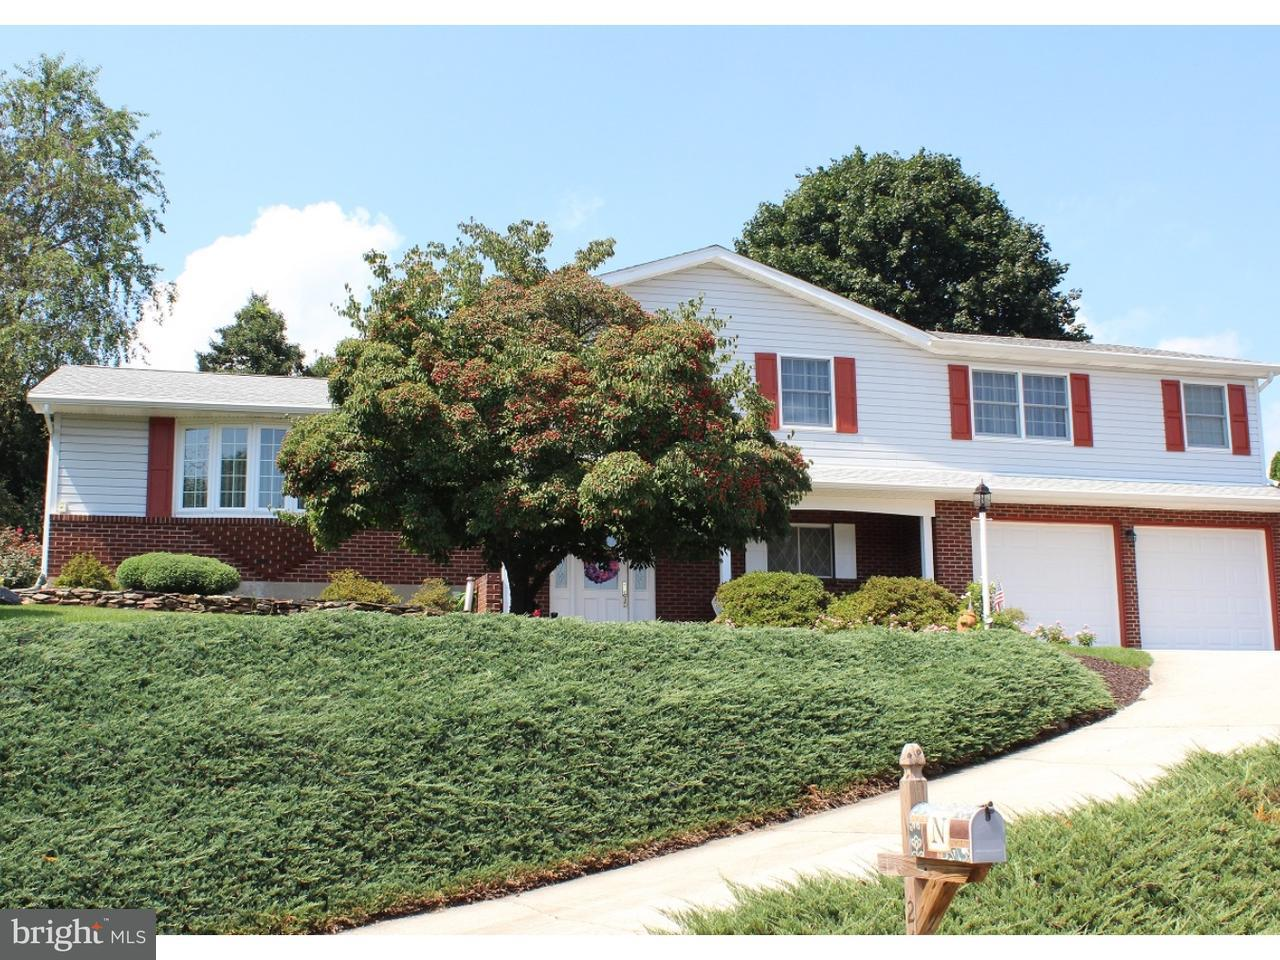 Single Family Home for Sale at 24 DEER PARK Drive Pottsville, Pennsylvania 17901 United States